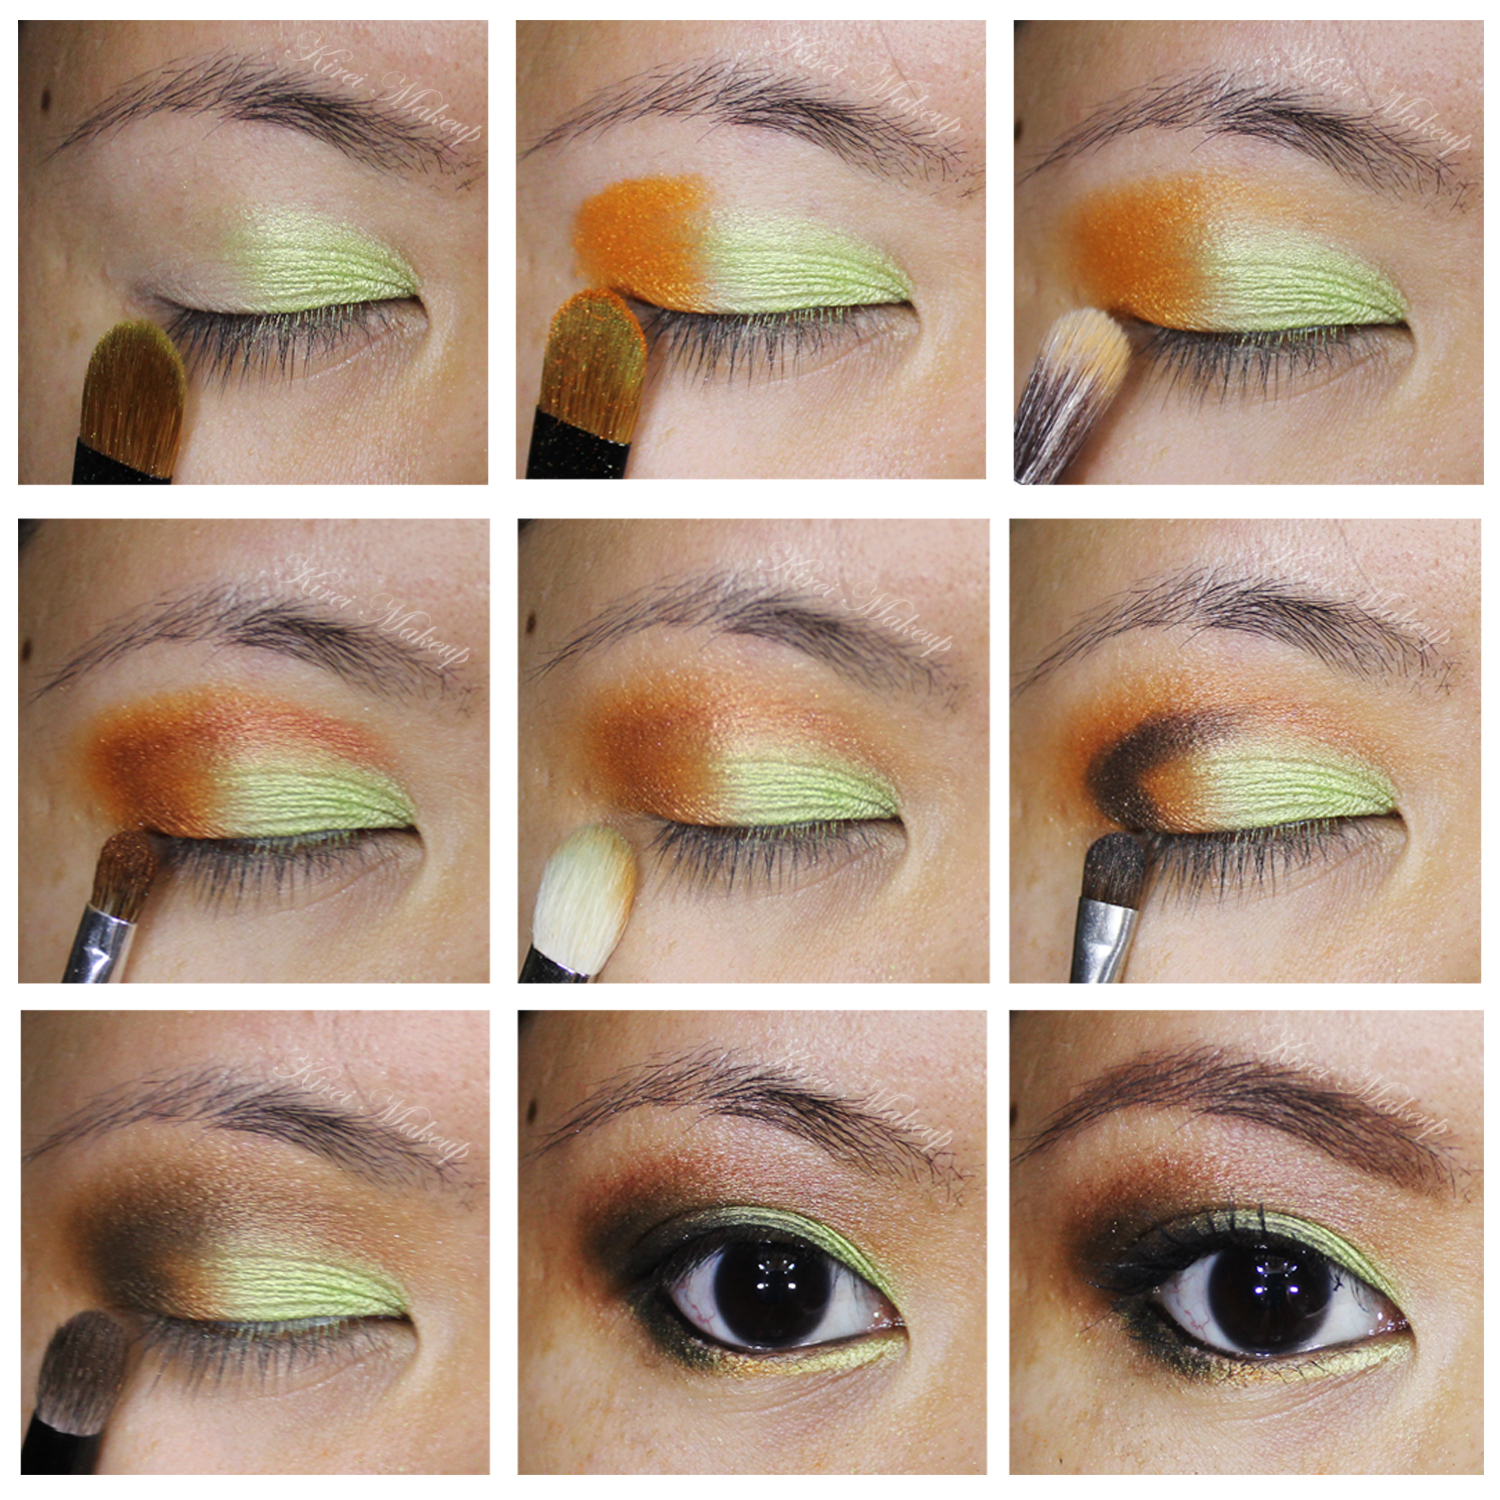 orange and mint makeup